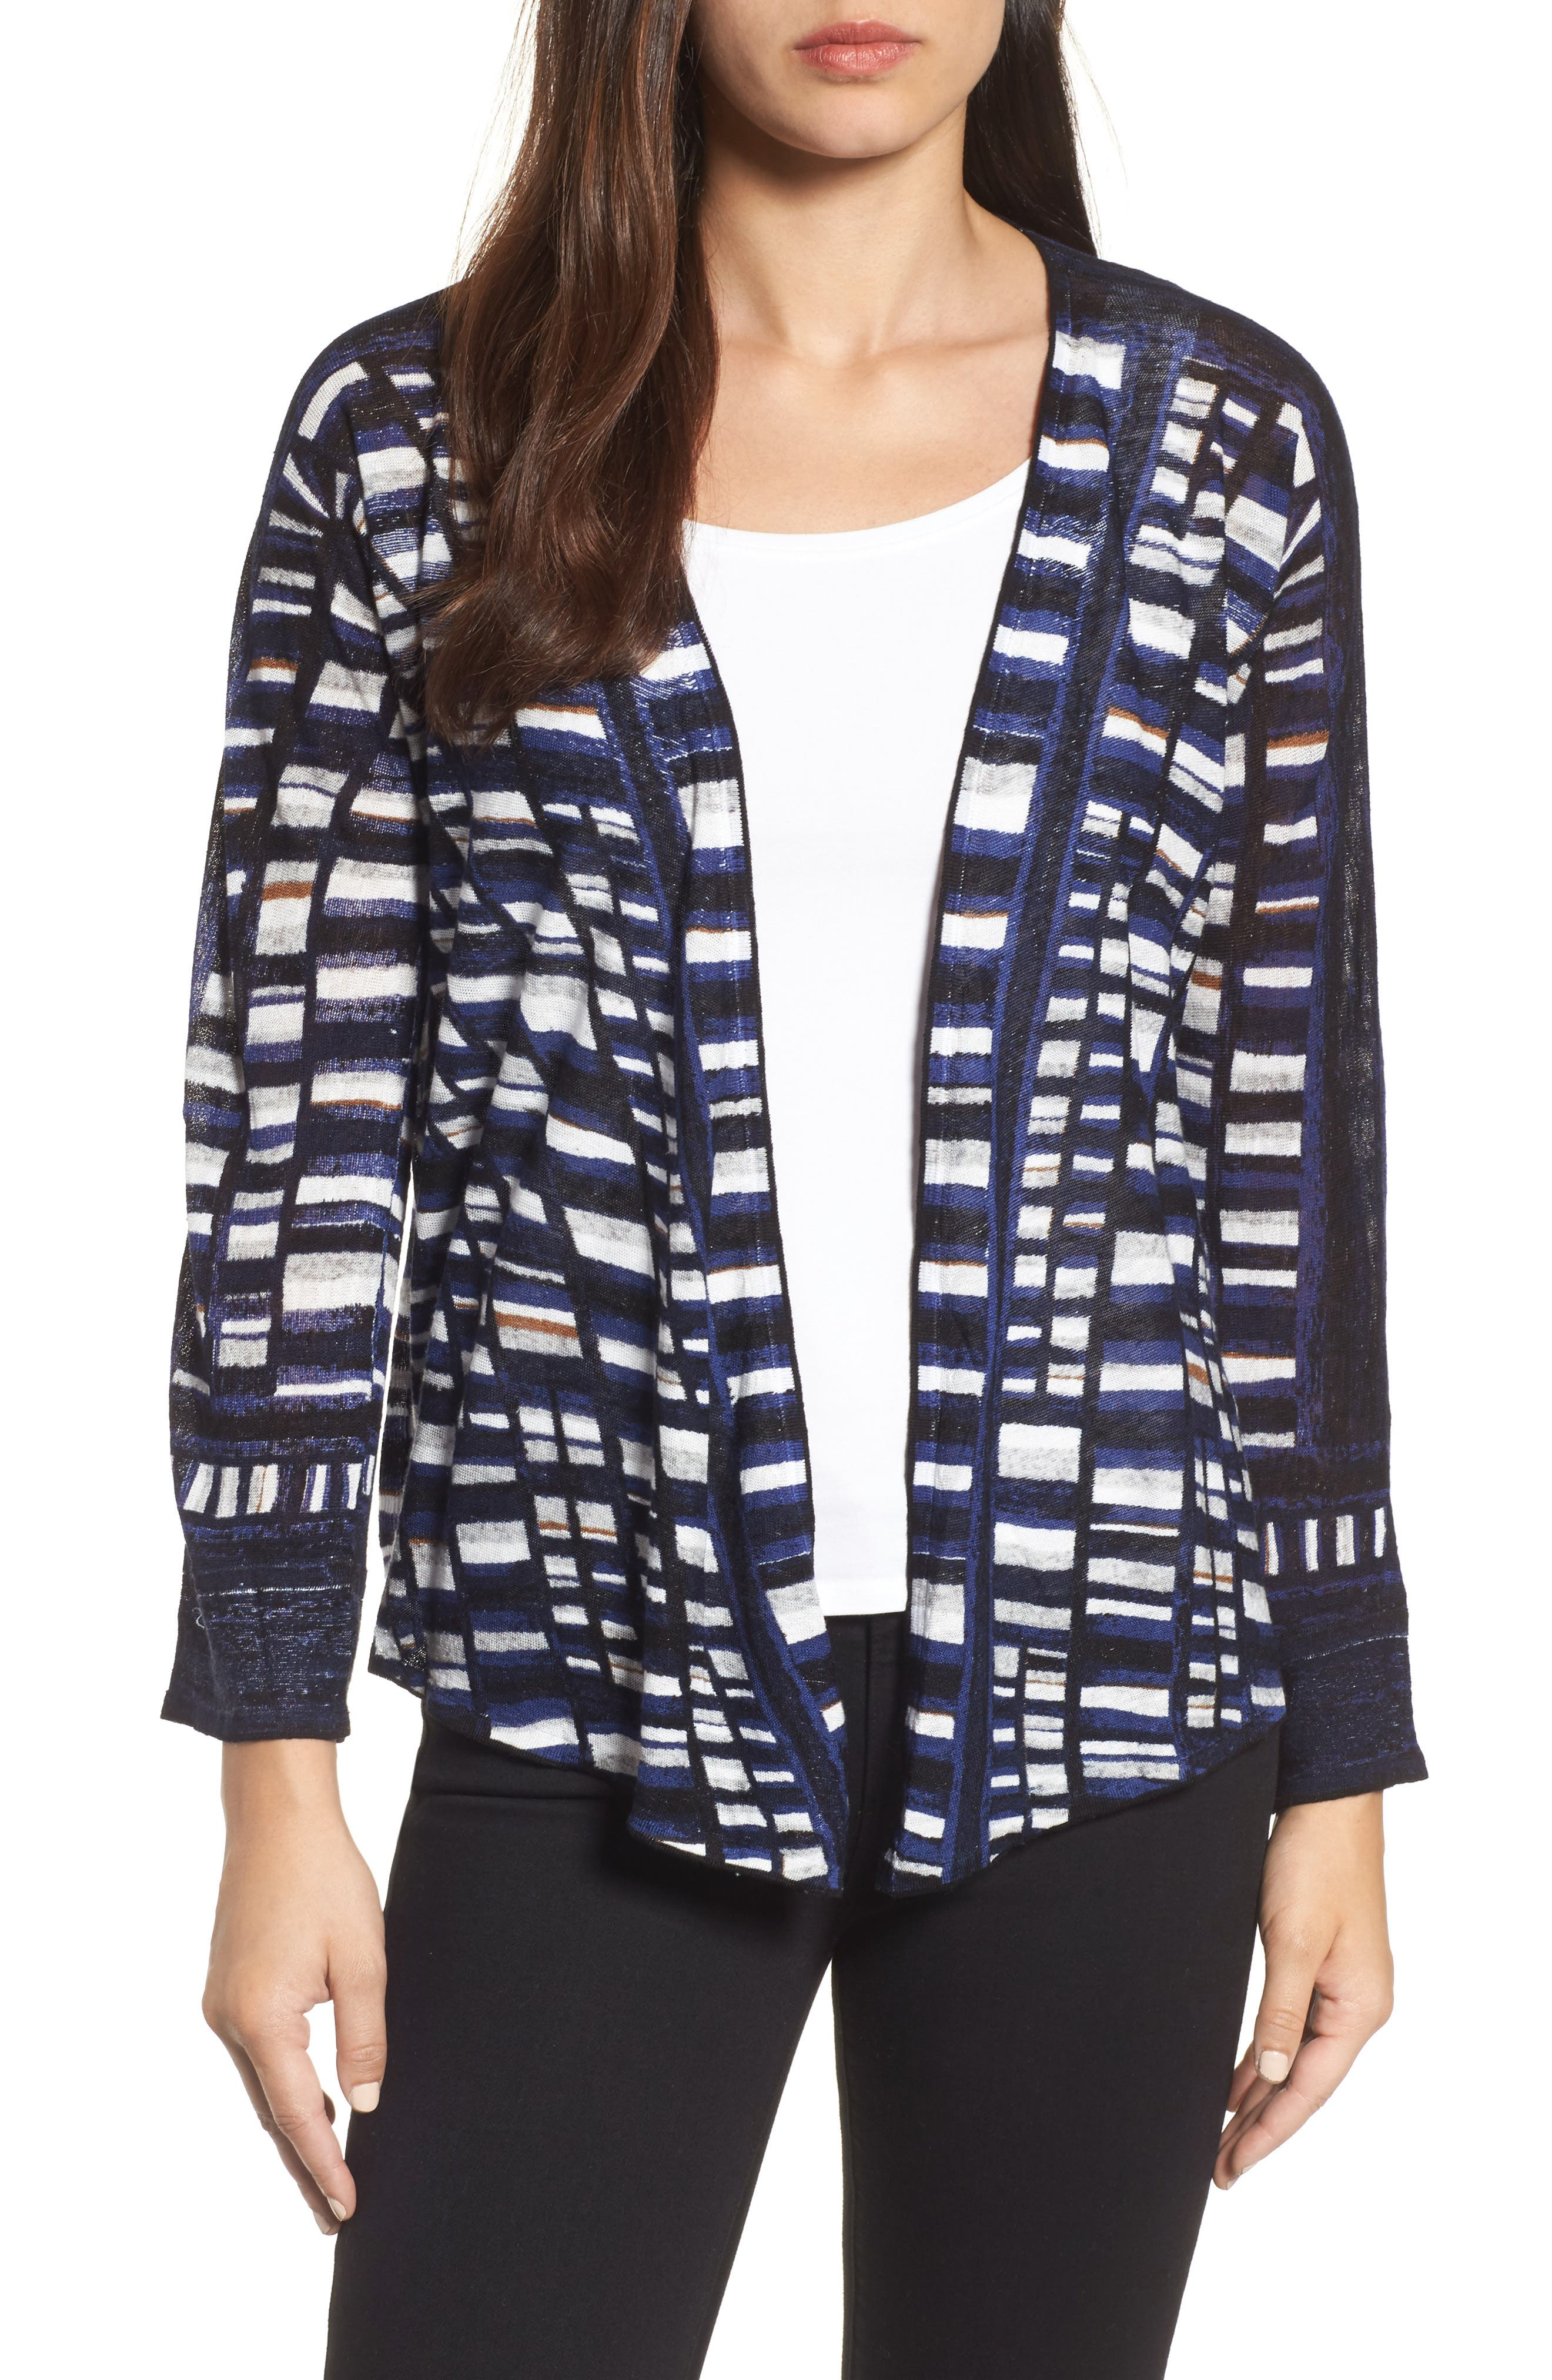 Window Light 4-Way Convertible Cardigan,                             Main thumbnail 1, color,                             499